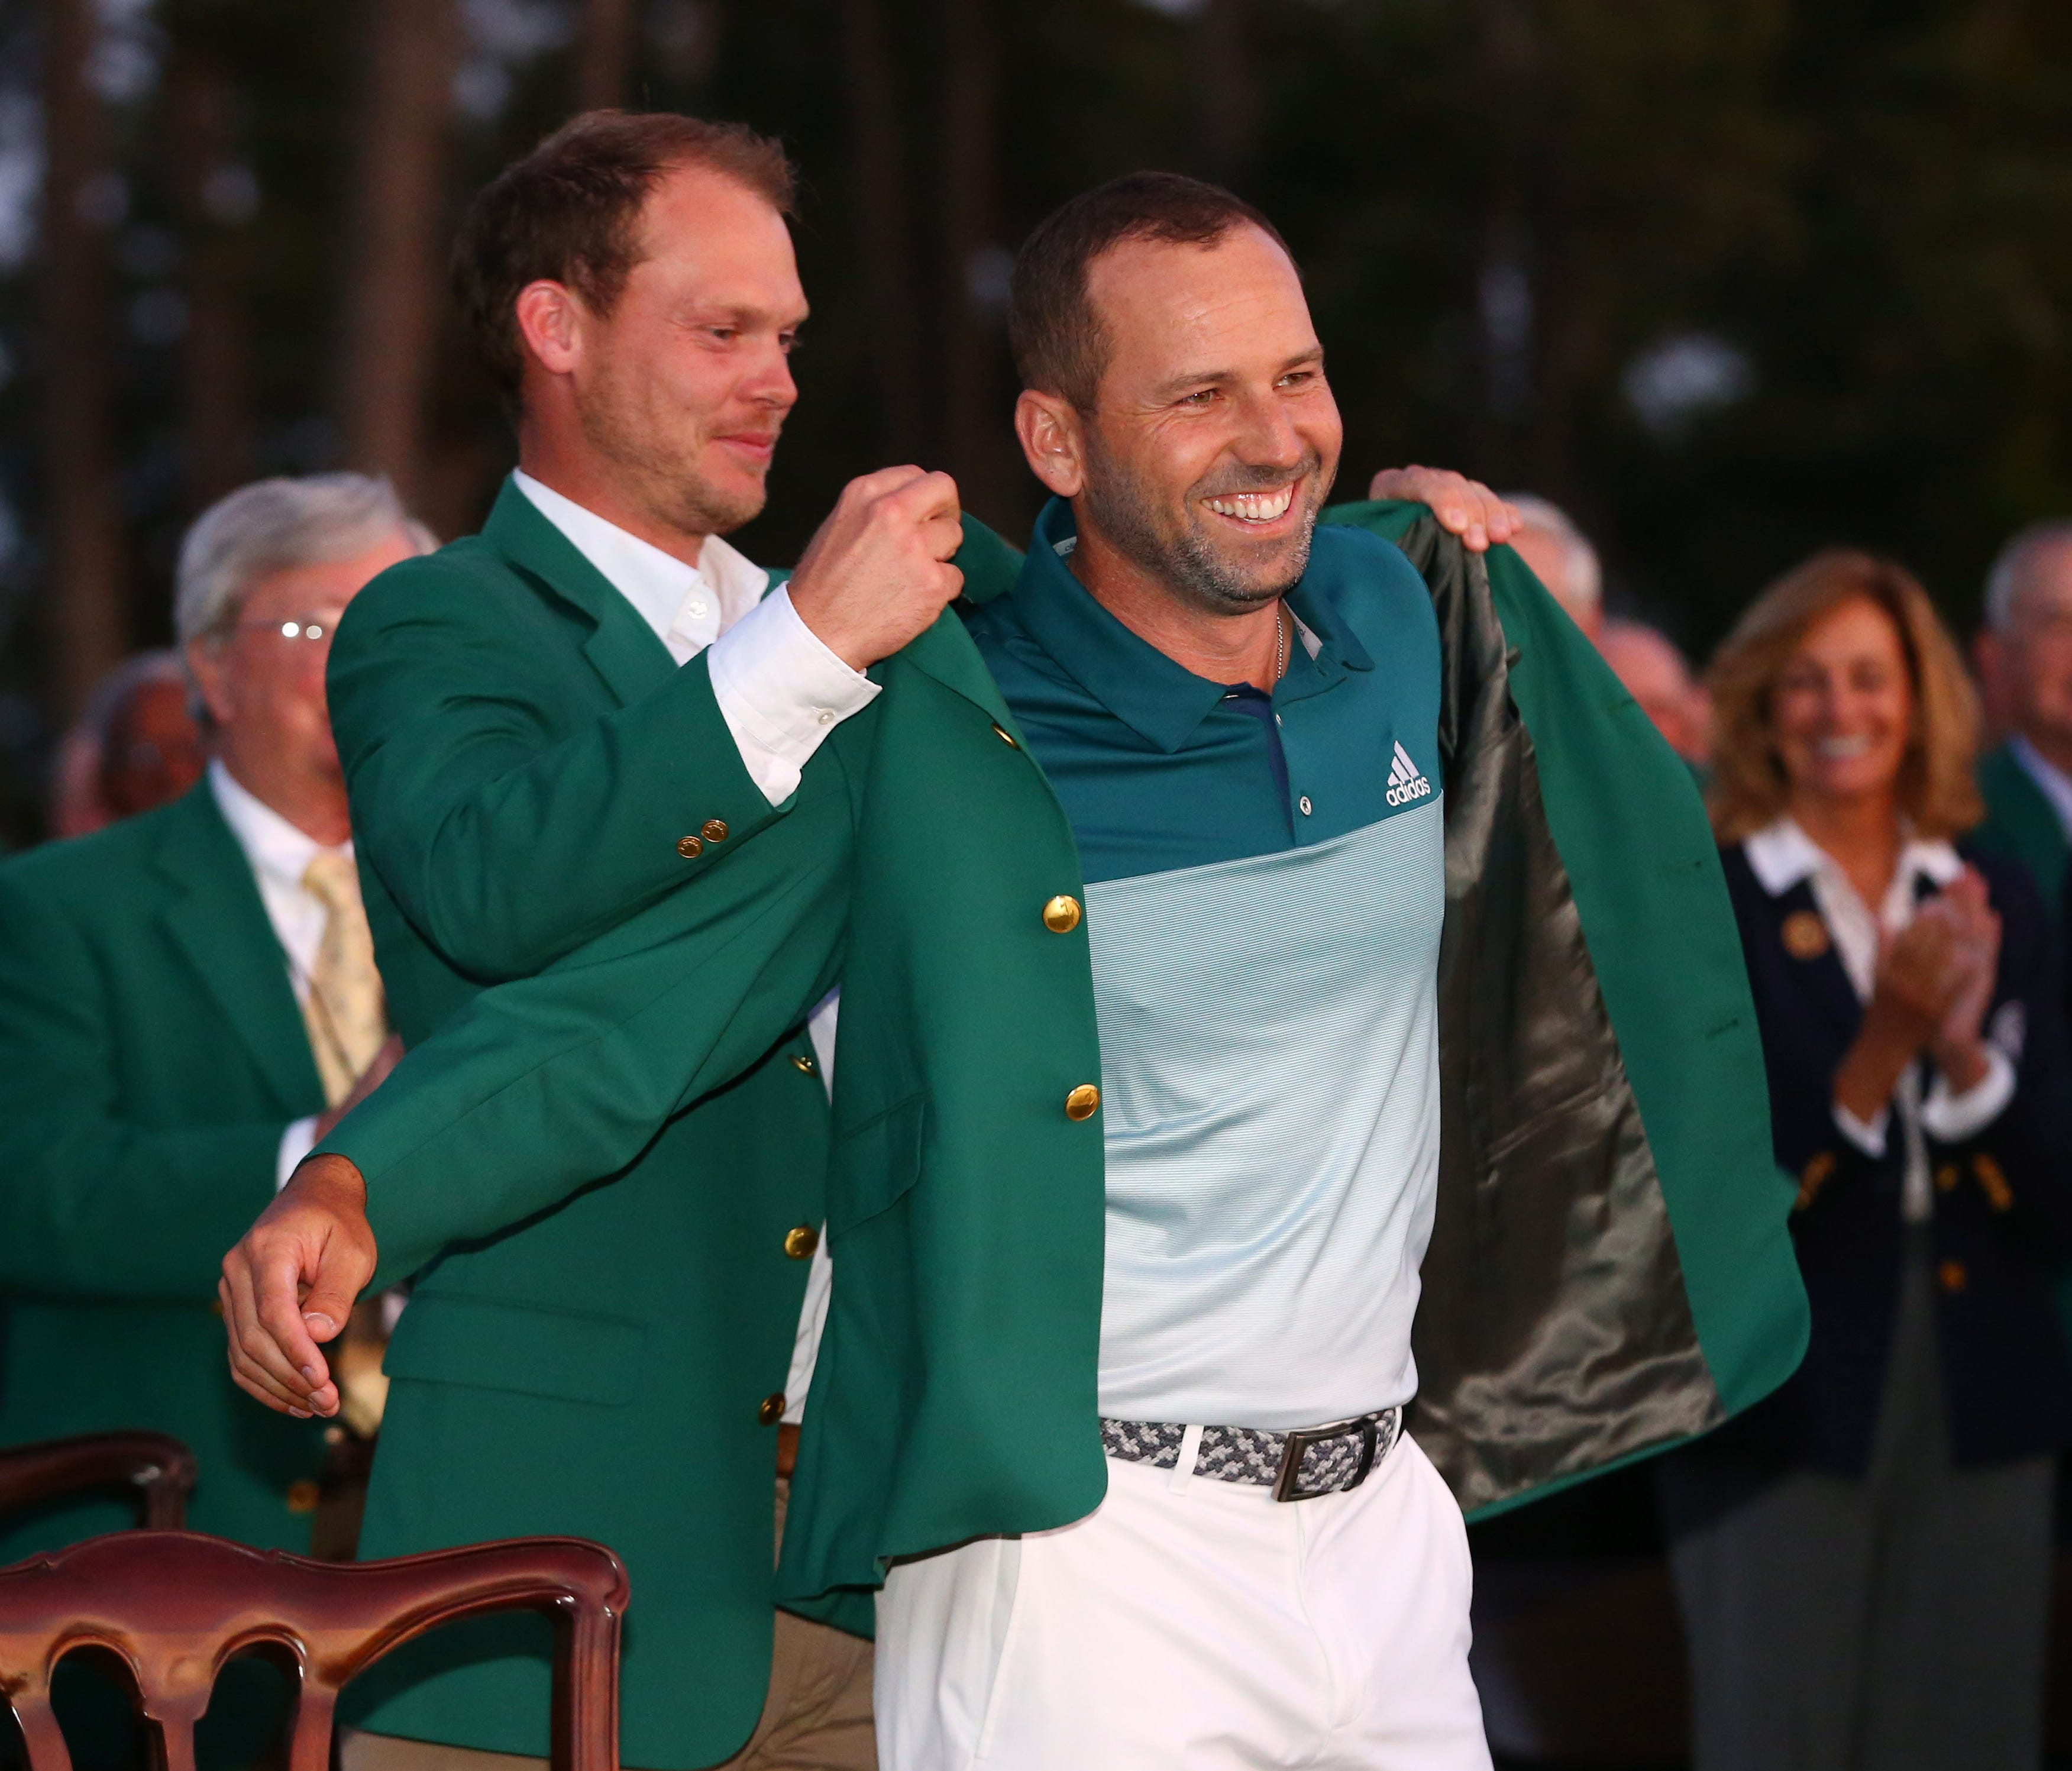 Danny Willett places the green jacket on 2017 winner Sergio Garcia after the final round of The Masters  on April 9.